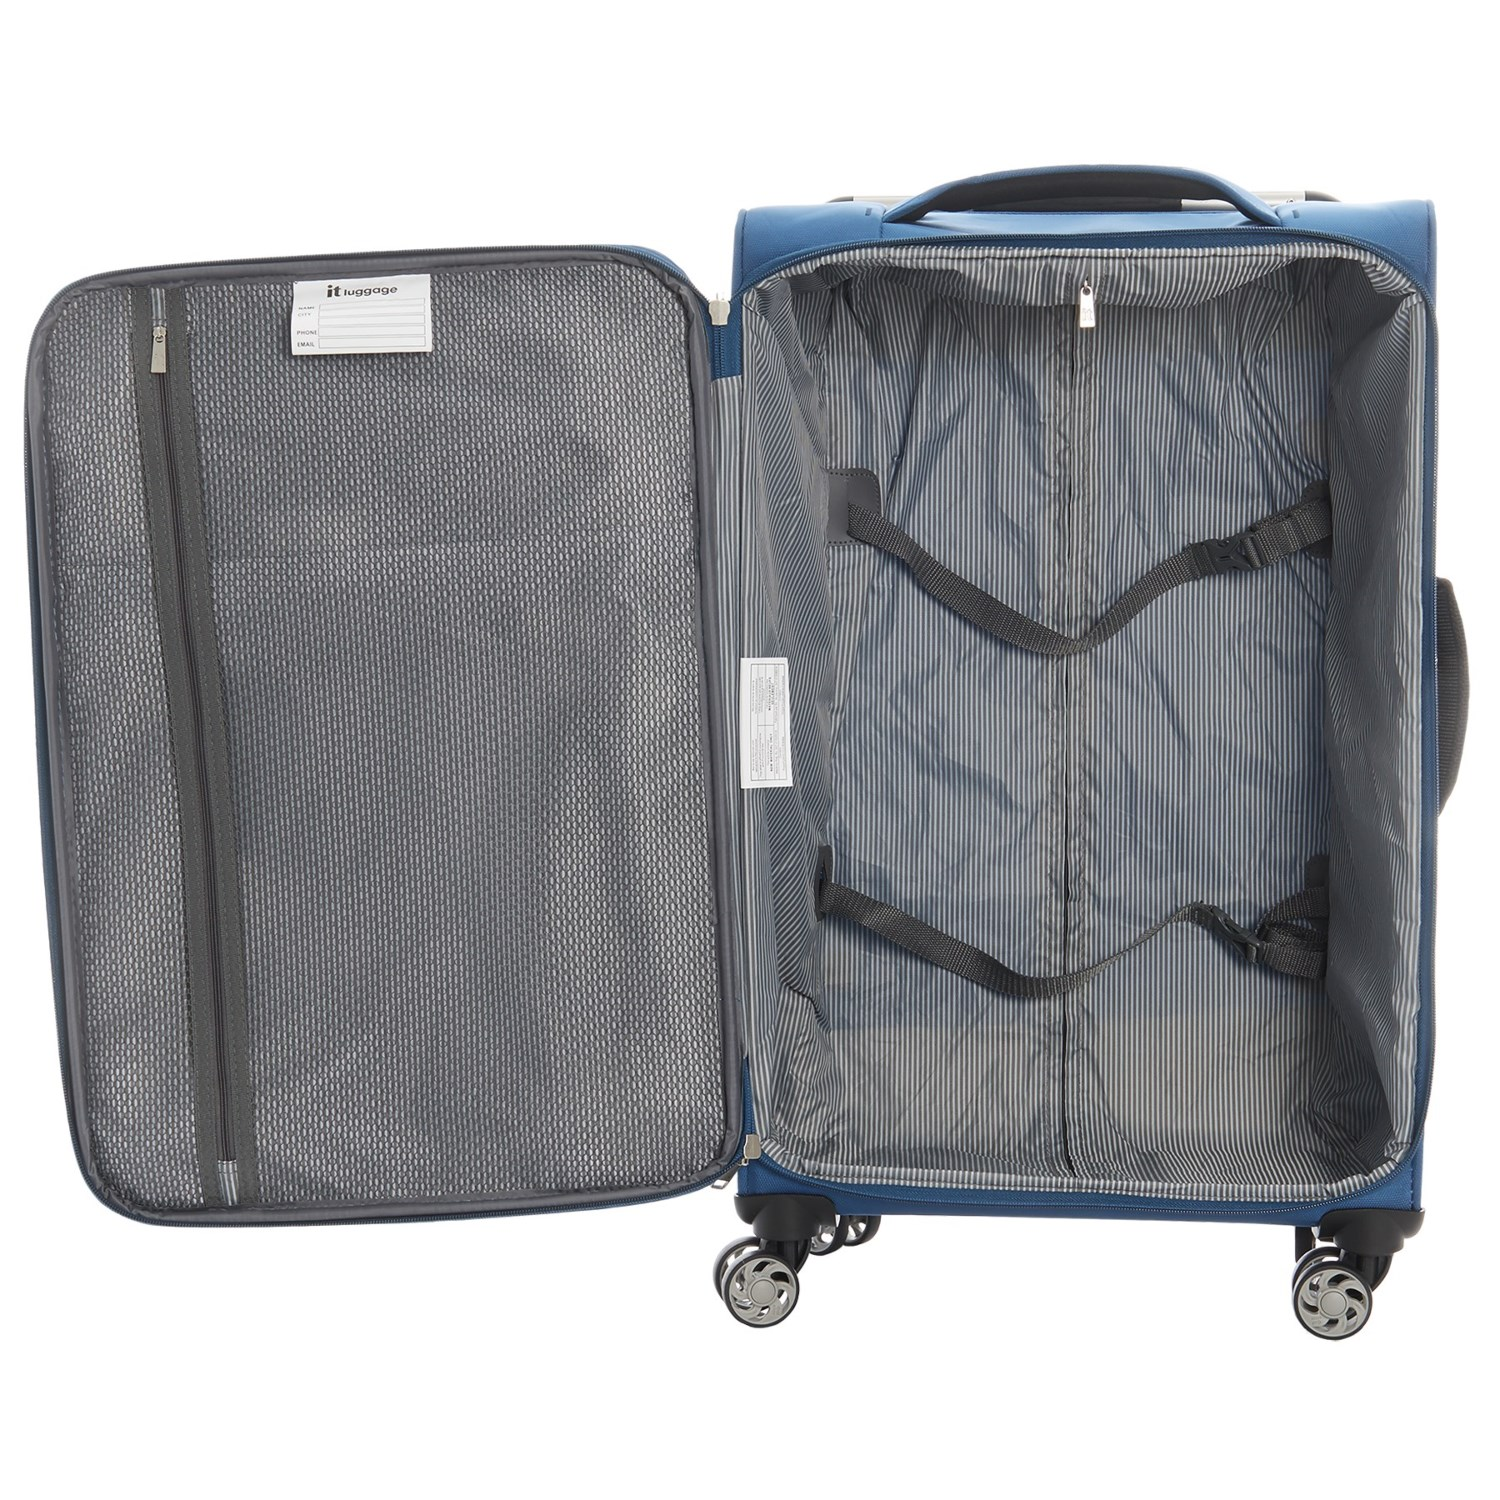 Lightest Travel Luggage Review